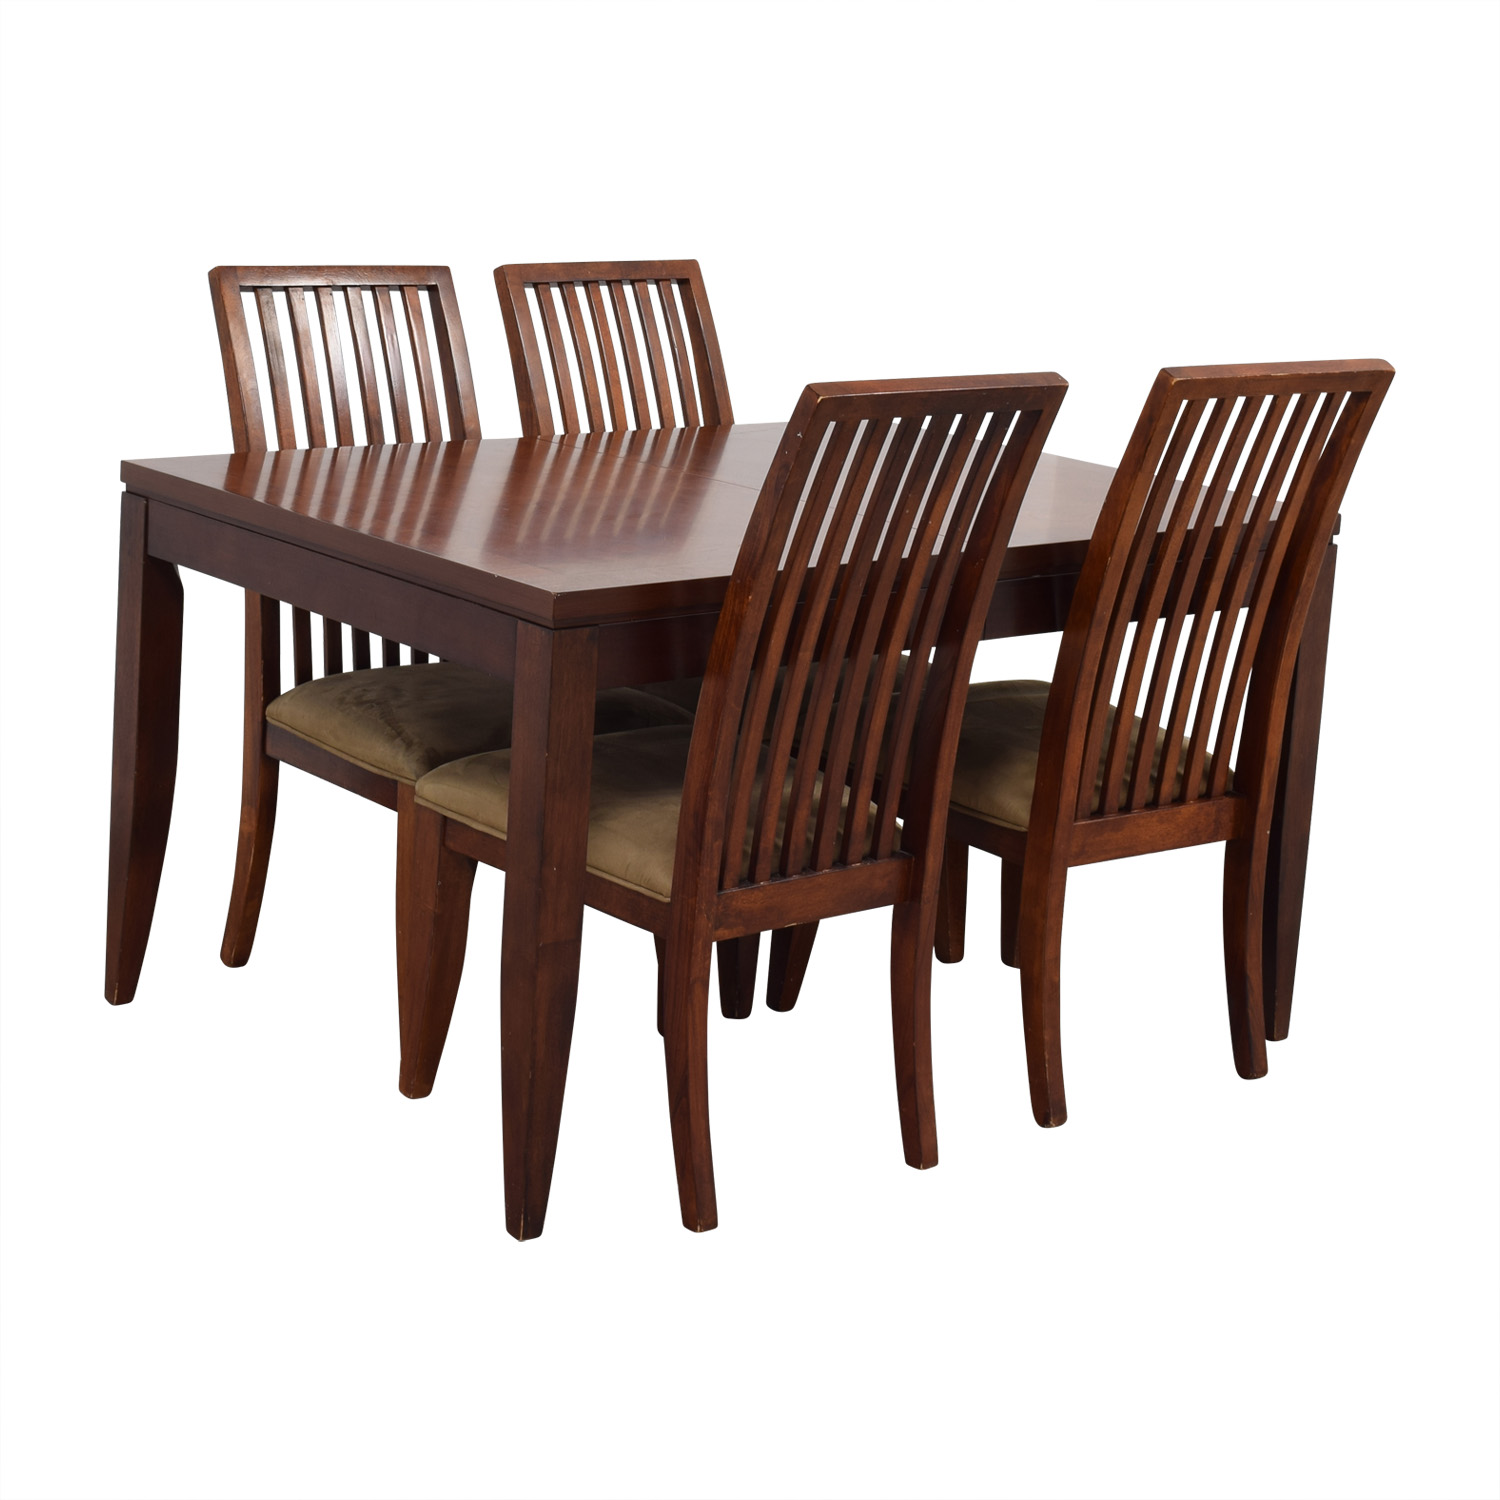 74 OFF   Macy's Macy's Wood Dining Set with Extendable ...